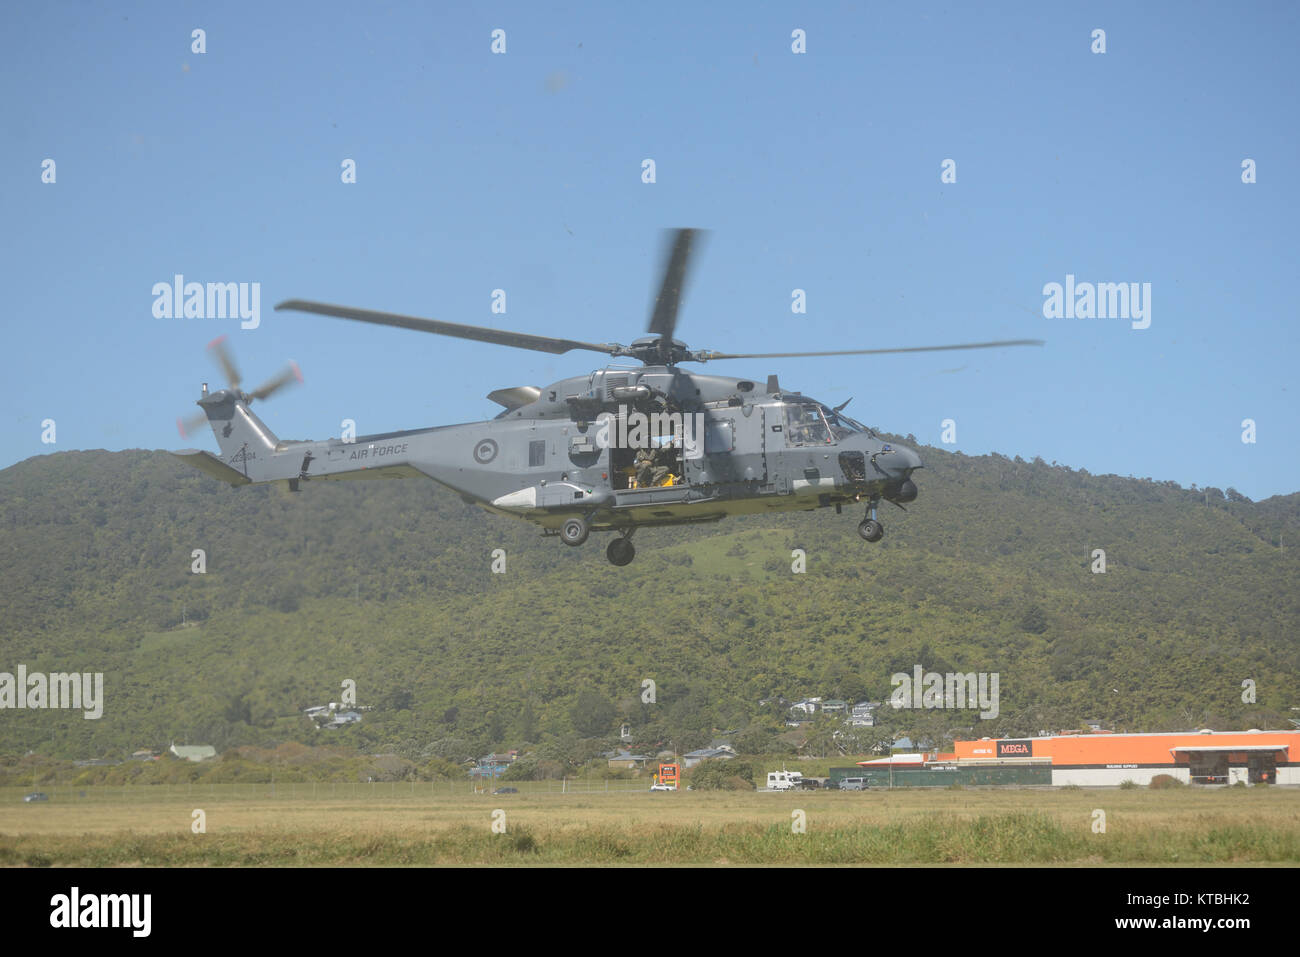 GREYMOUTH, NEW ZEALAND, NOVEMBER 18, 2017: Dust obscures an Air Force NH90 helicopter taking off at an open day - Stock Image